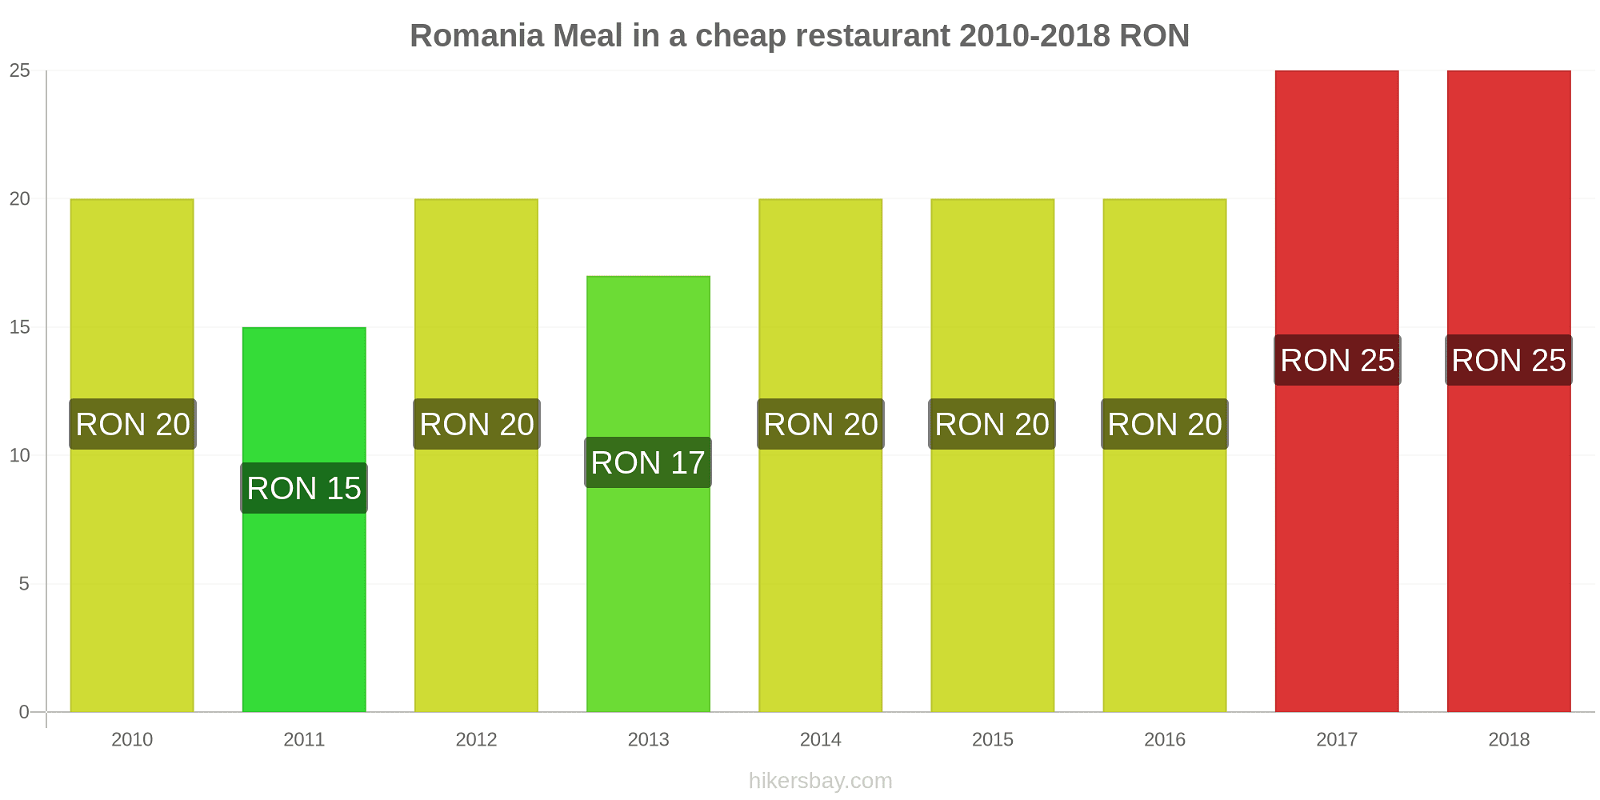 Romania price changes Meal in a cheap restaurant hikersbay.com